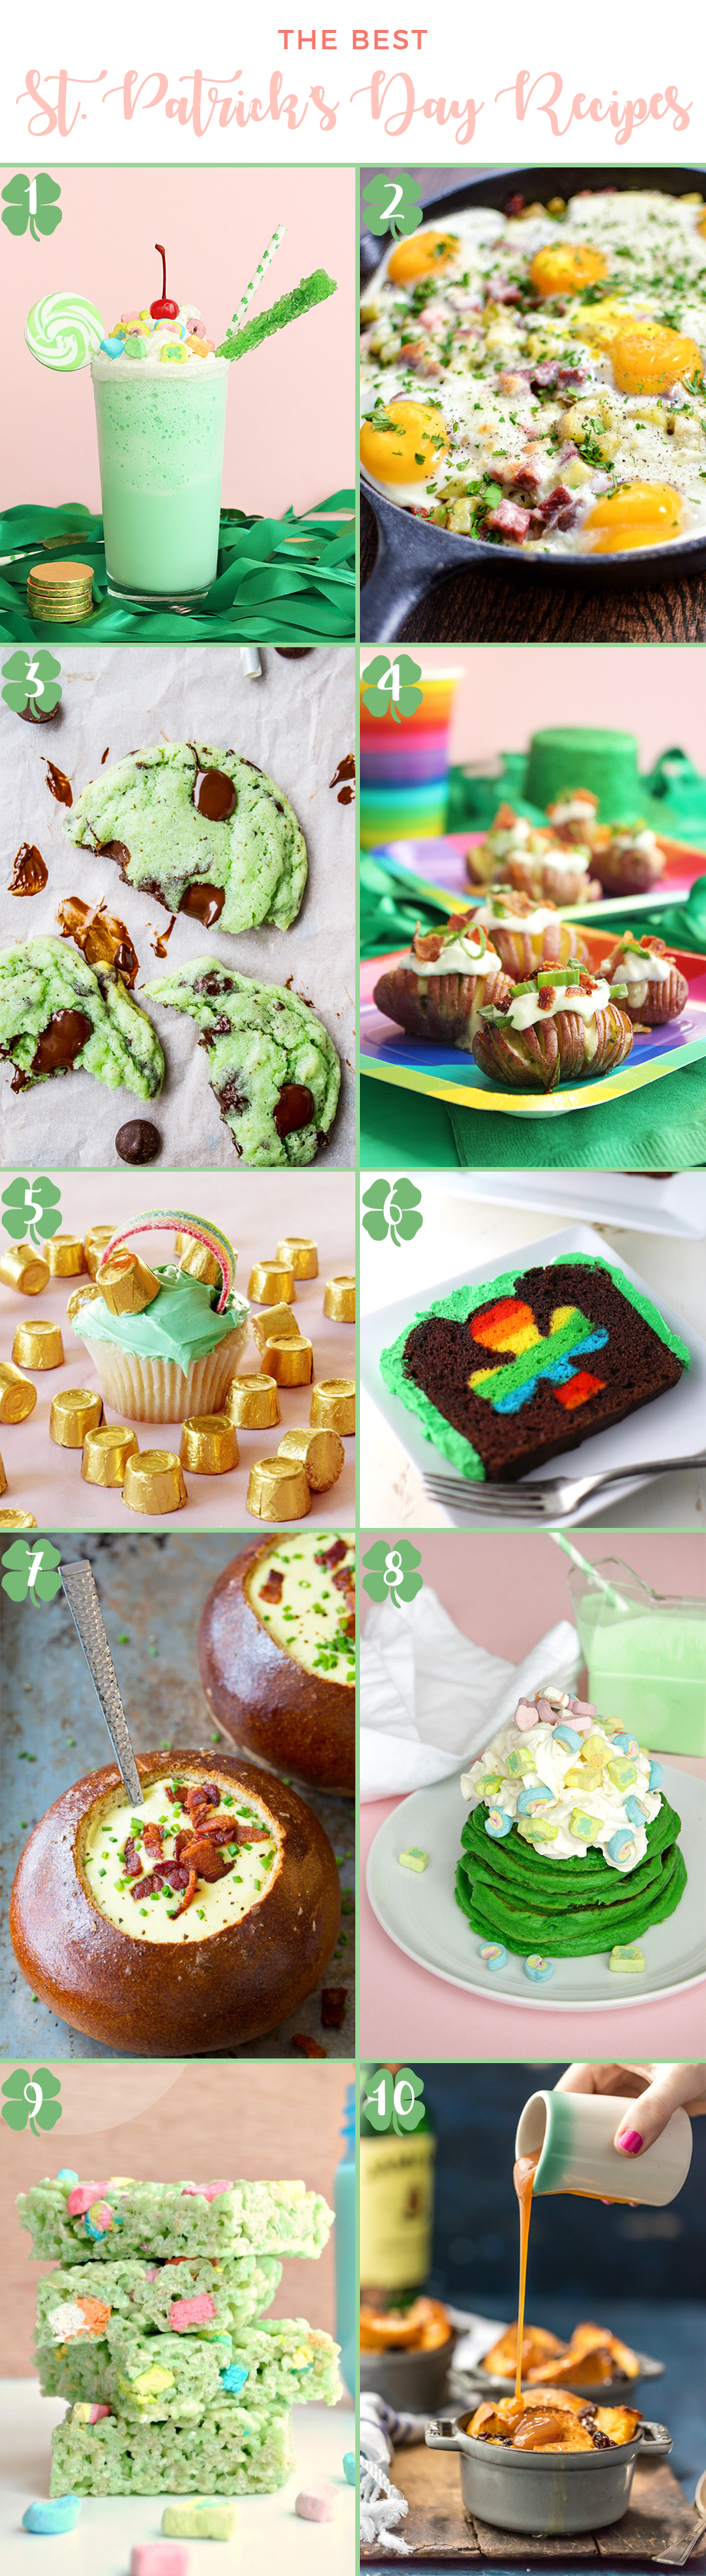 Kid-friendly St. Patrick's Day recipes for March.